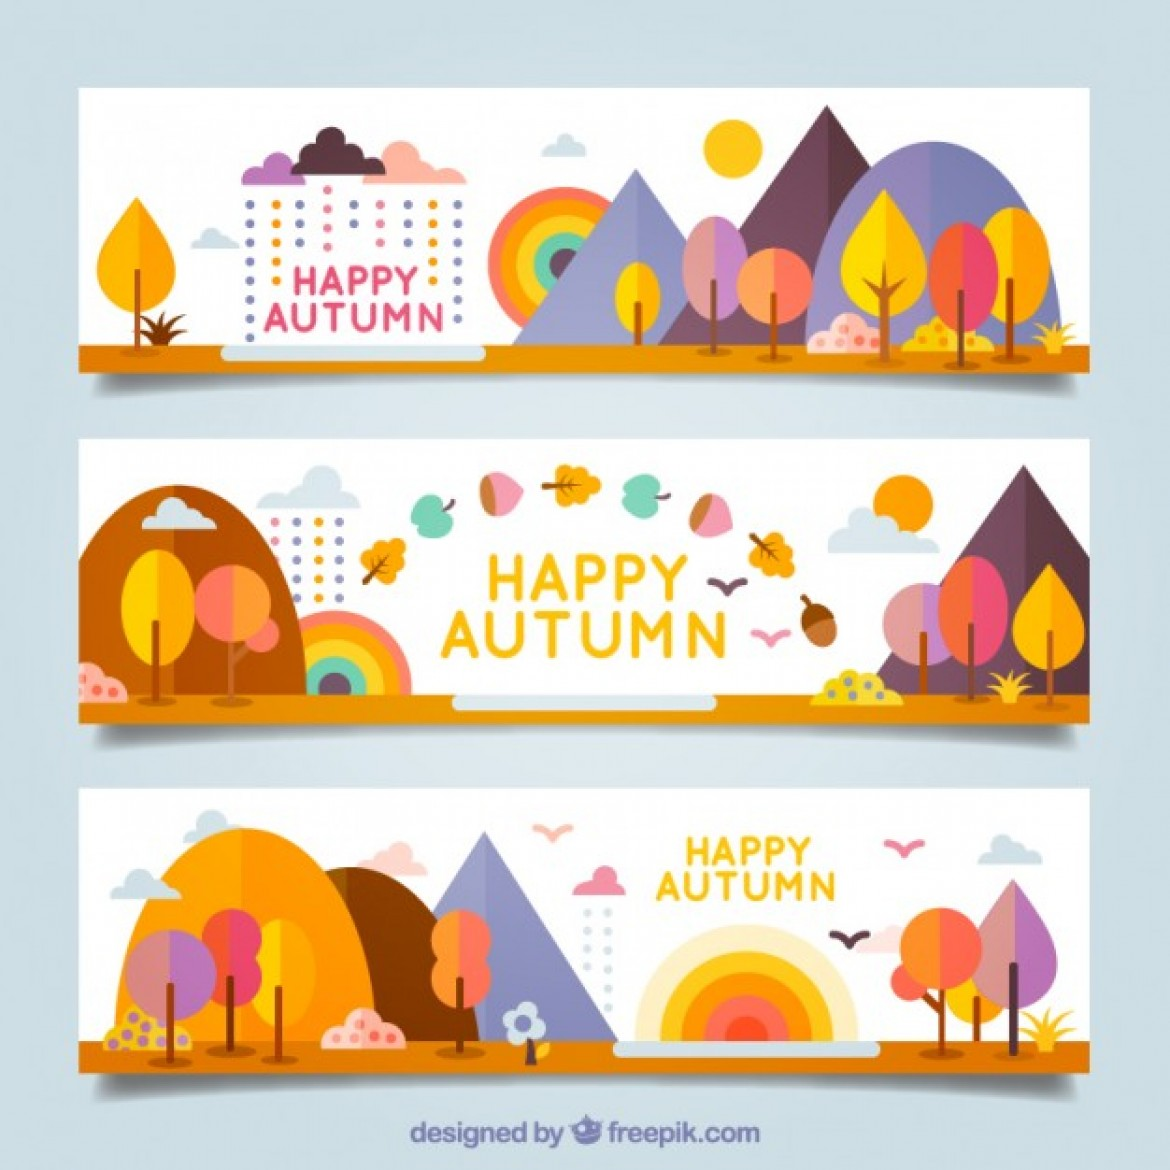 wpid-colorful-happy-autumn-banners_23-2147521387-1170x1170